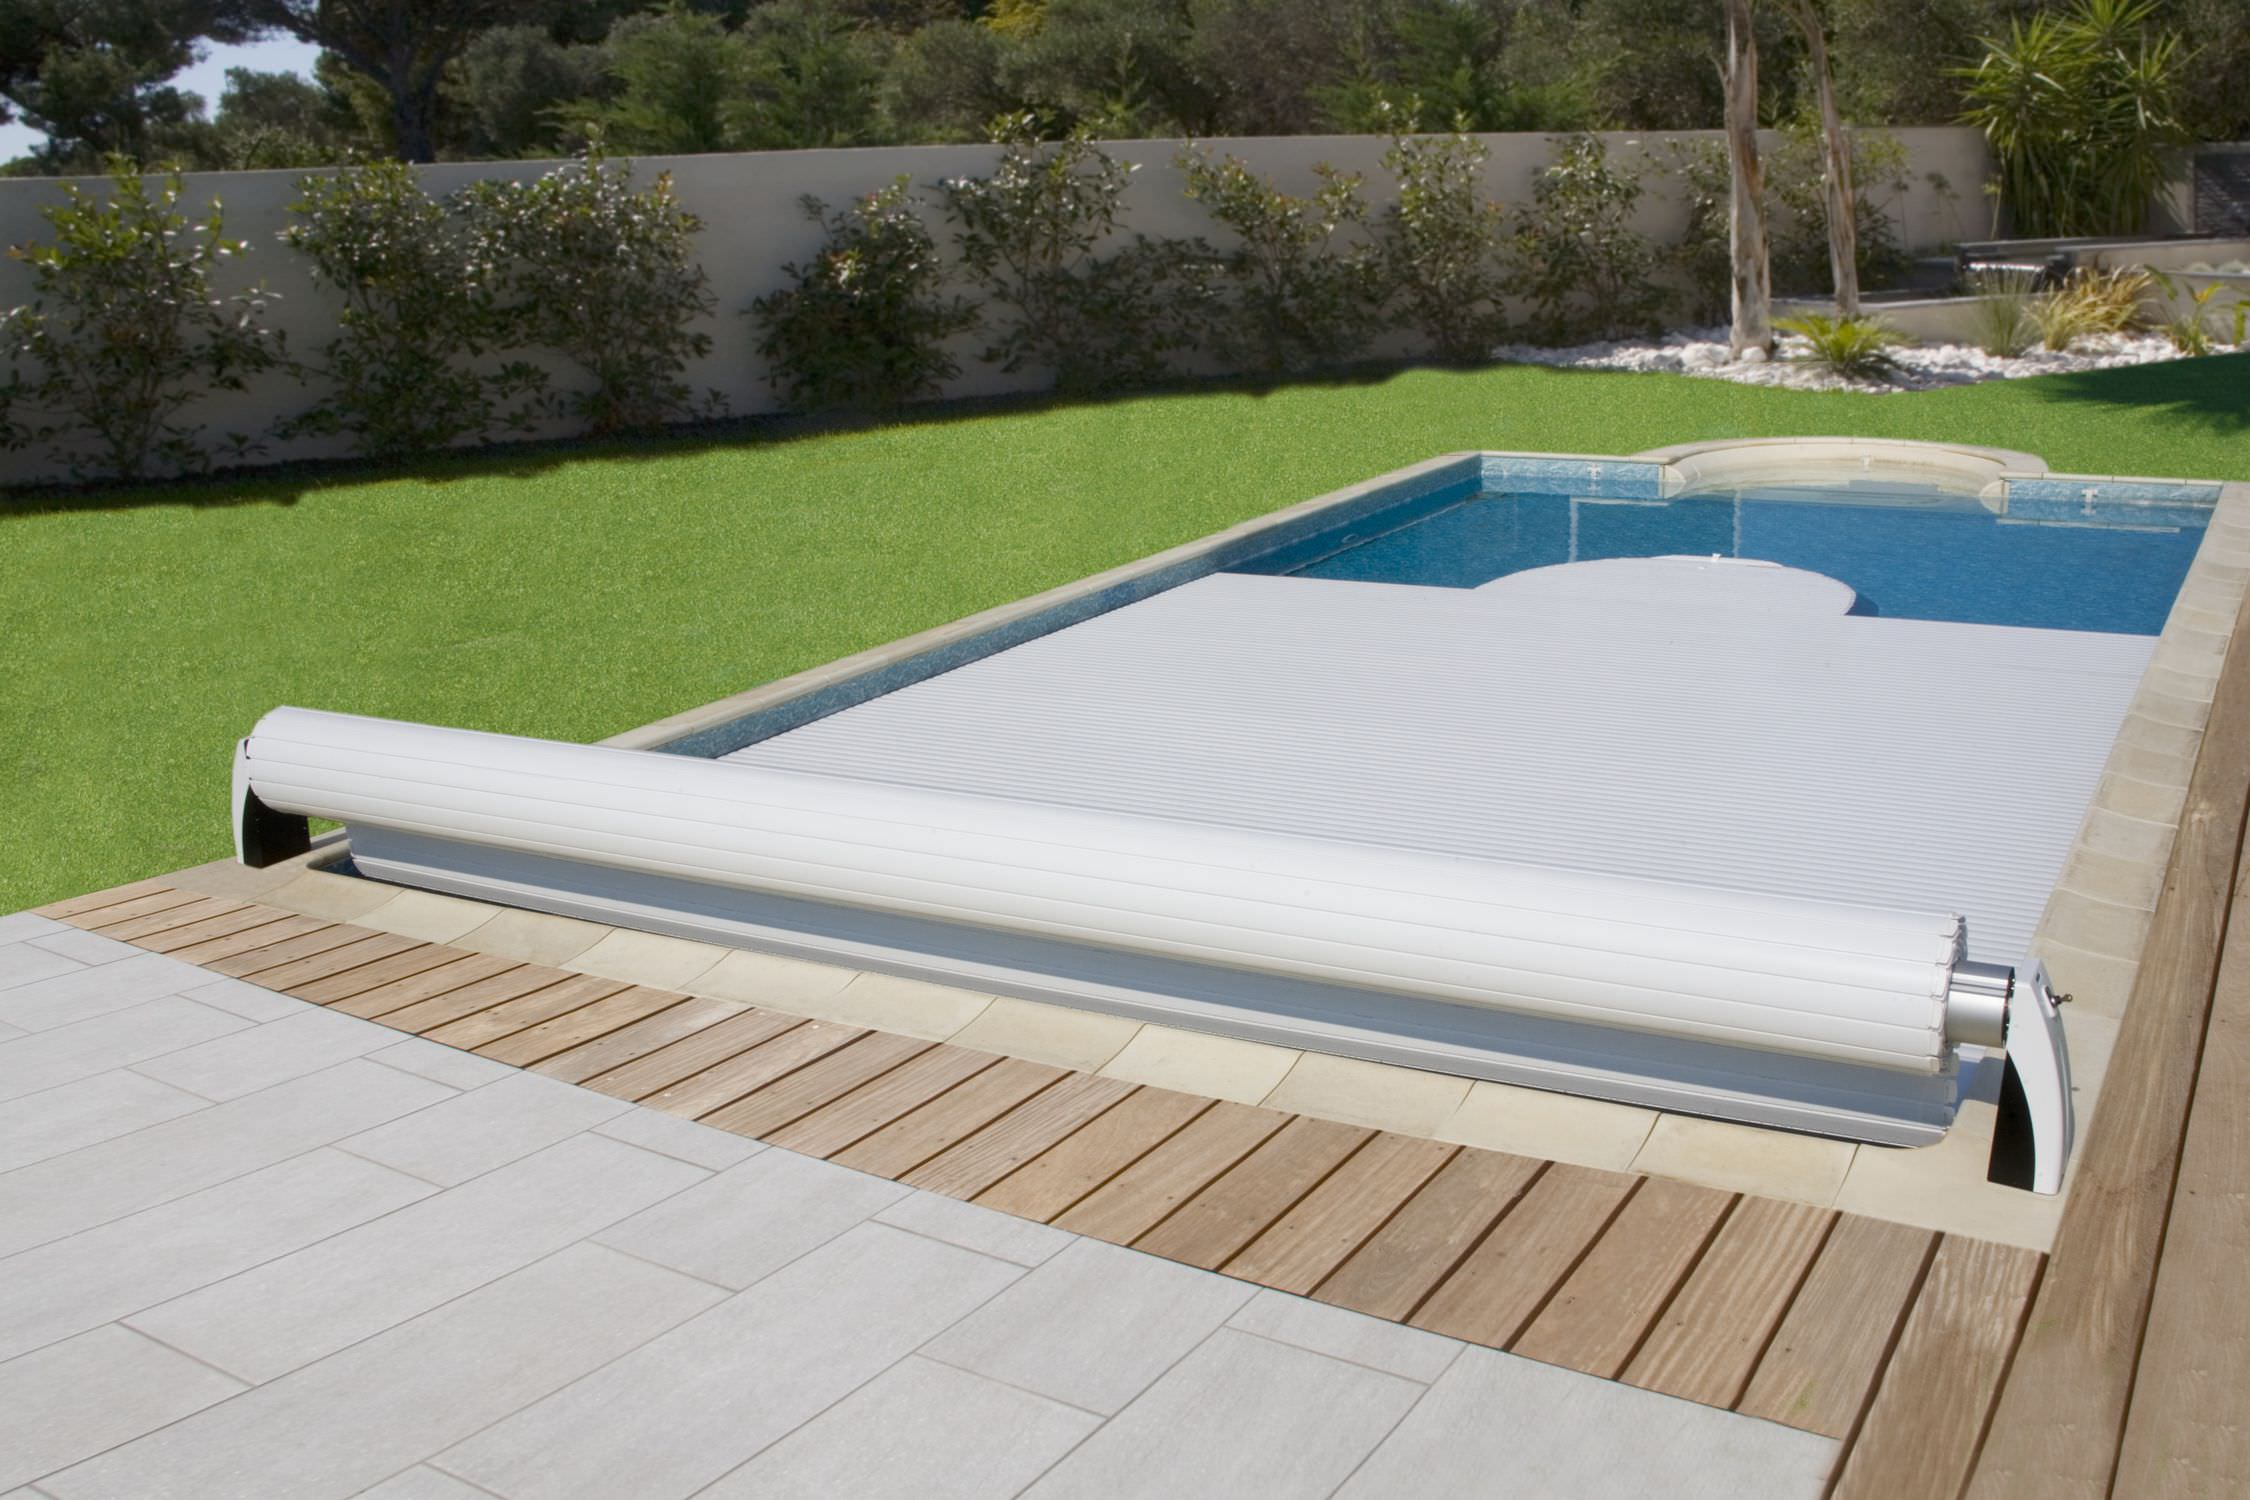 Abdeckplane Unter Pool How To Perform A Pool Cover Repair?